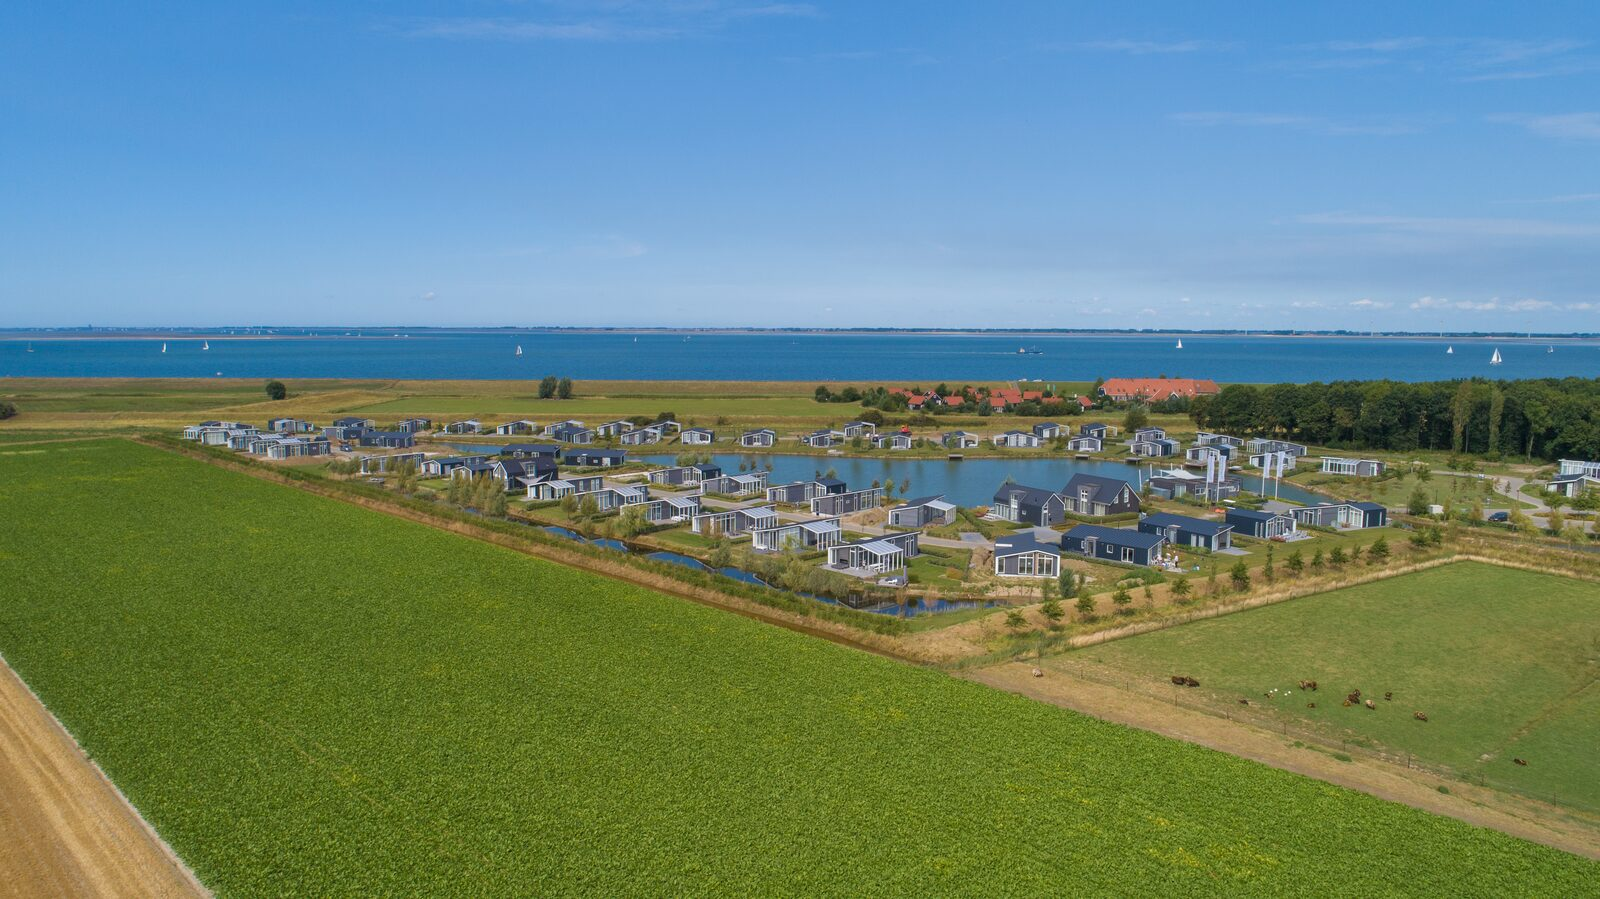 Oosterschelde Water Resort